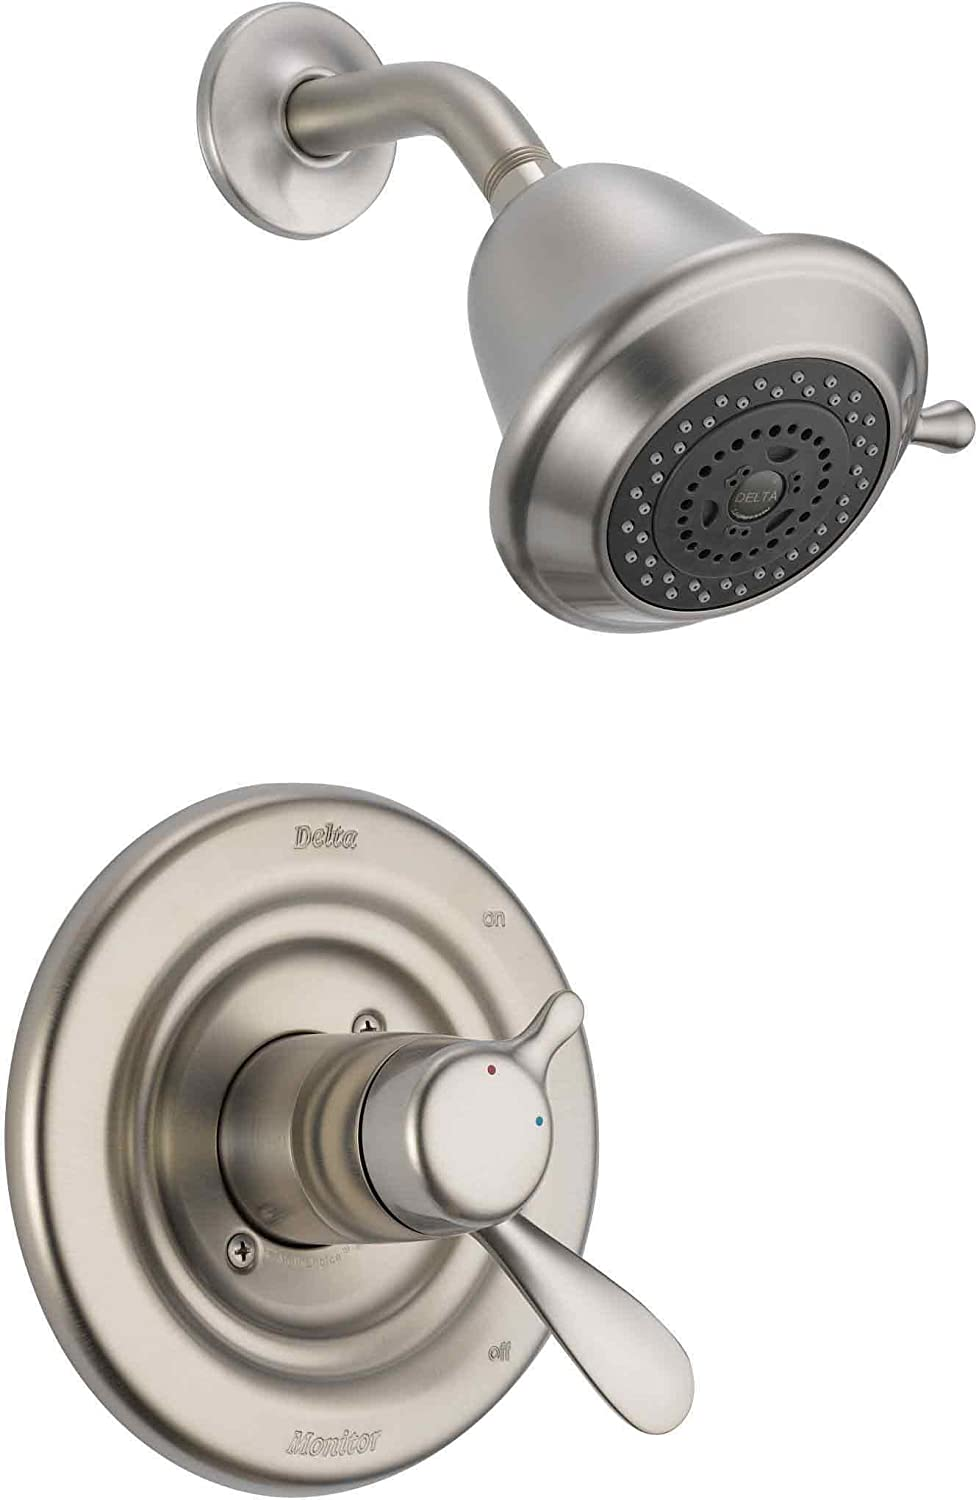 Delta Faucet T17230 SS Classic Monitor 17 Series Shower Trim, Stainless   Faucet  Trim Kits   Amazon.com